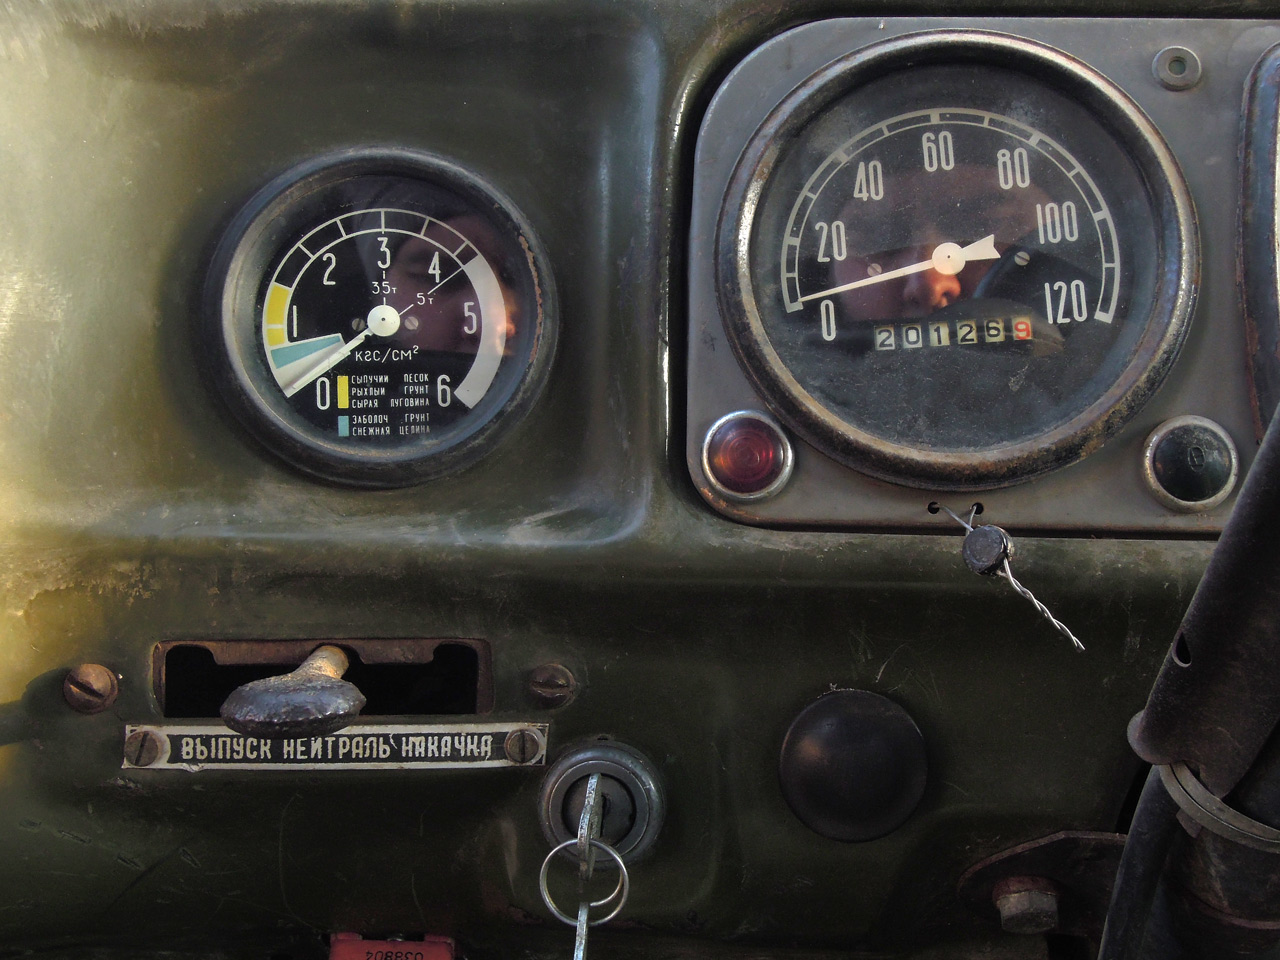 File:ZIL-131-tires-manometer-valve-and-speedmeter.jpg - Wikimedia ...